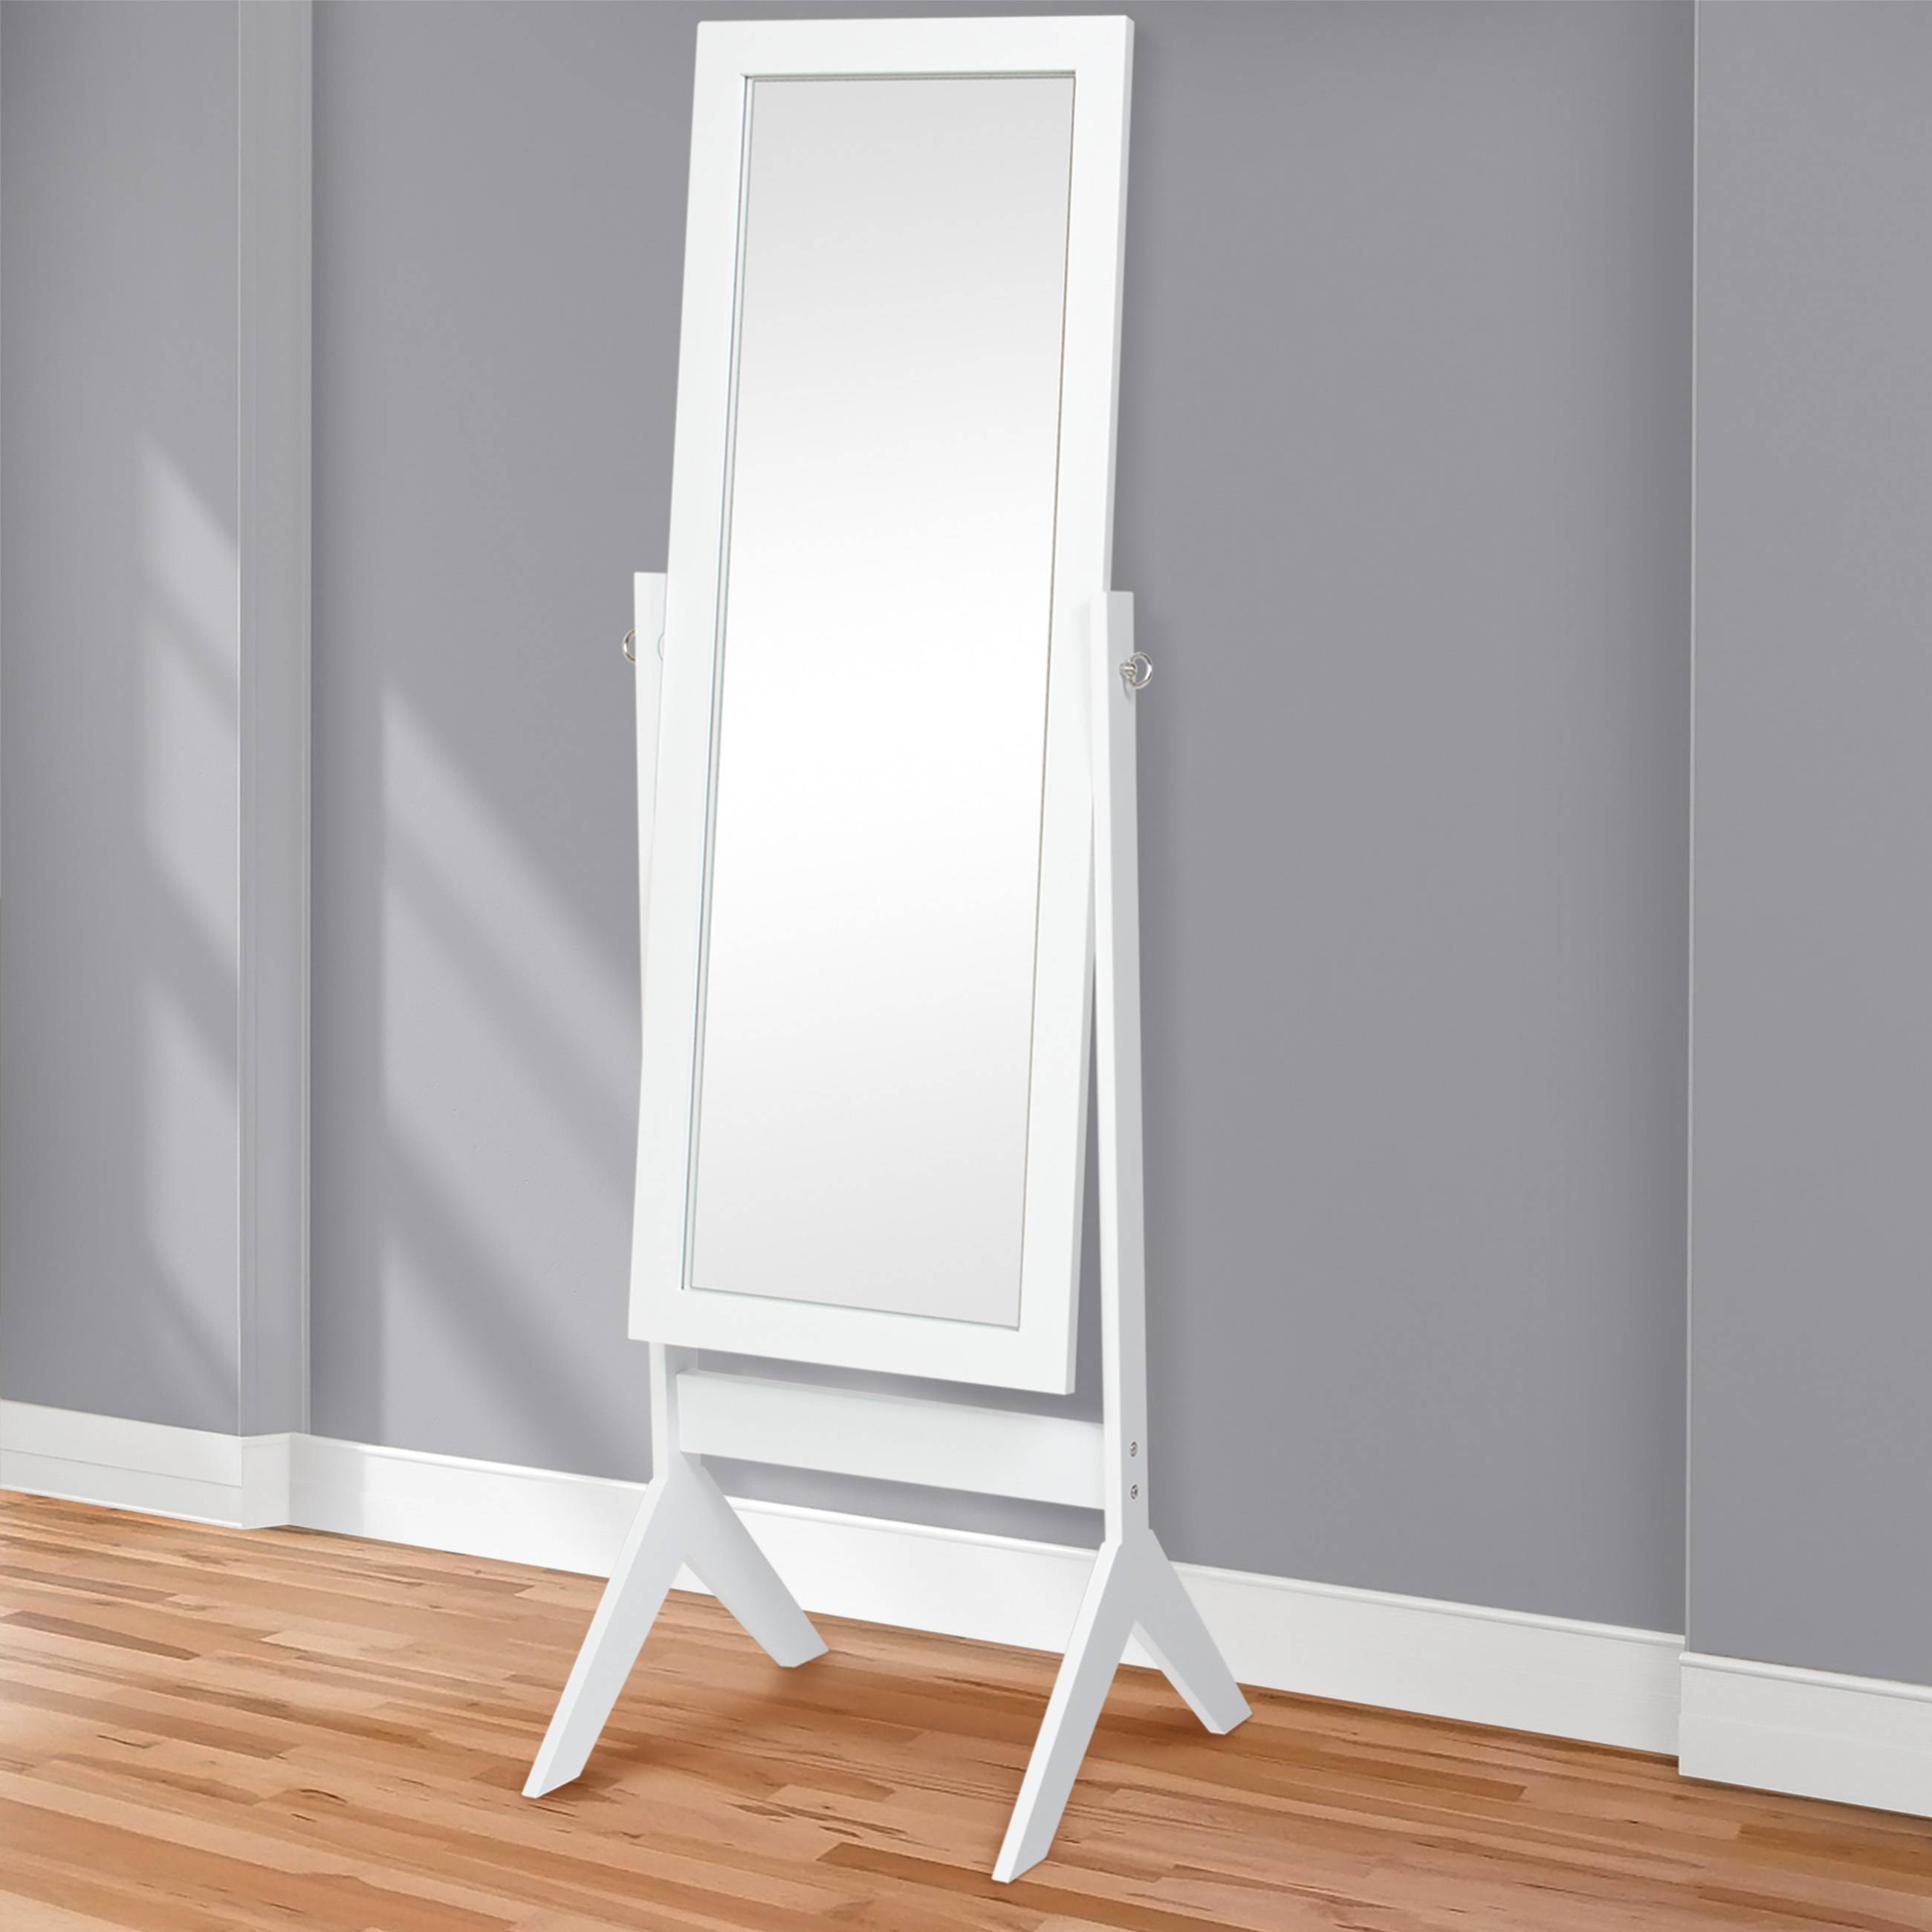 Free Standing Long Mirrors Bedroom ~ Piazzesi Throughout Free Standing Long Mirrors (View 9 of 15)